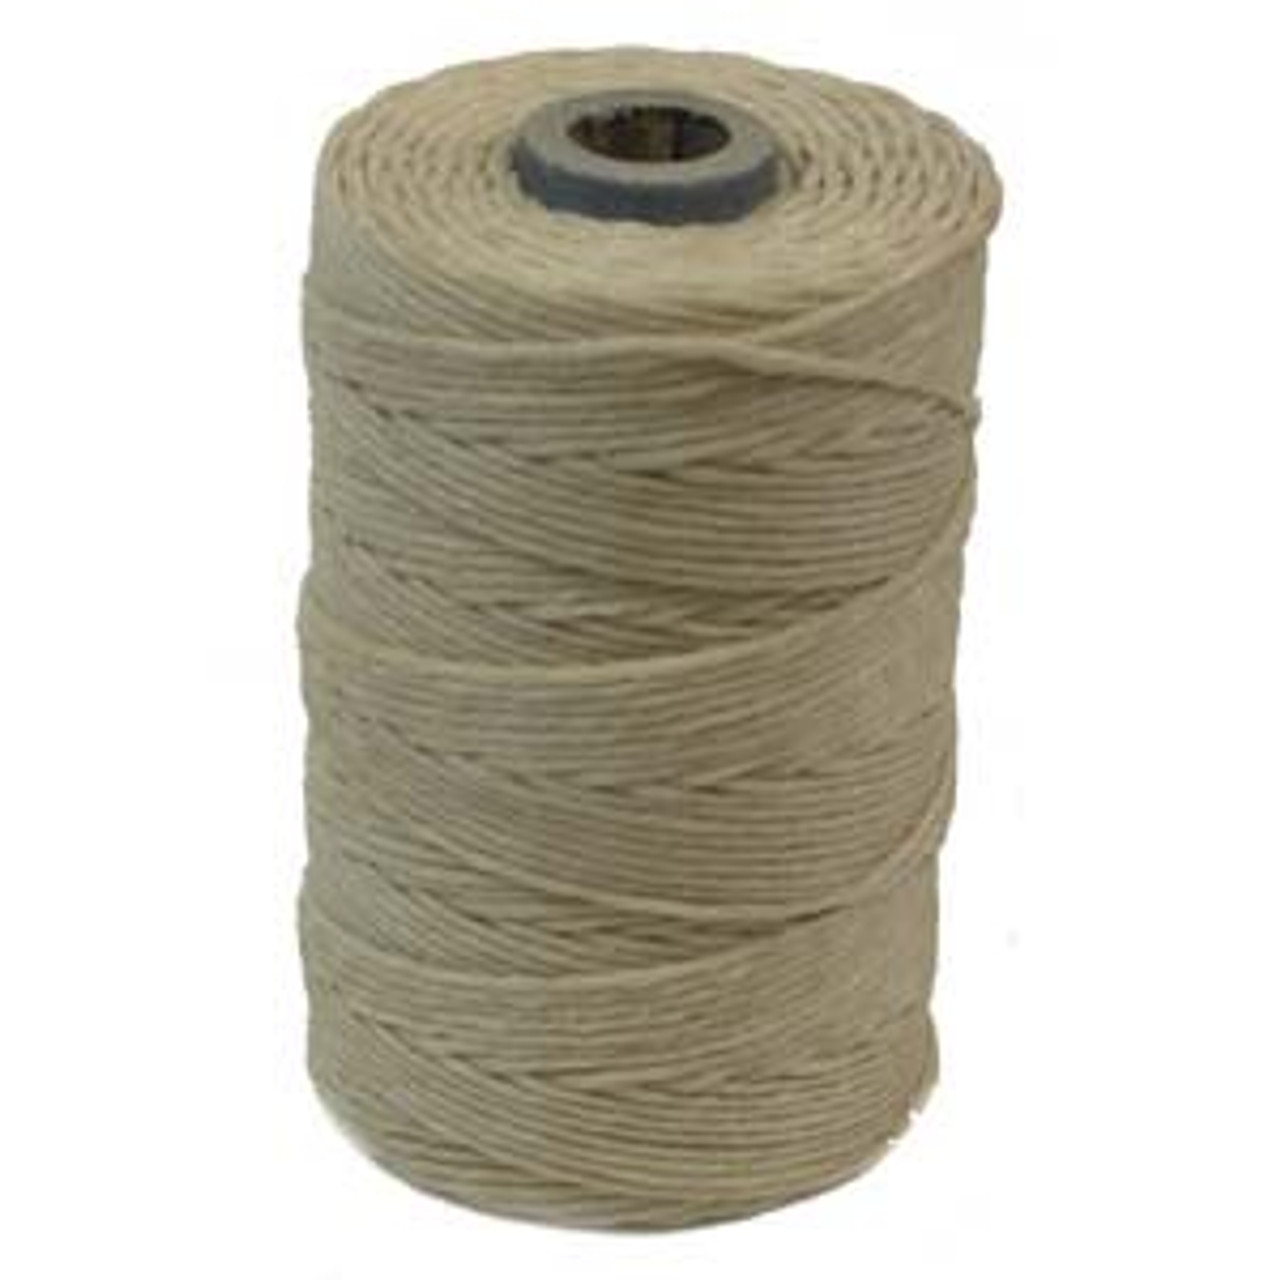 Natural 4ply Irish Waxed Linen (10 Yards)